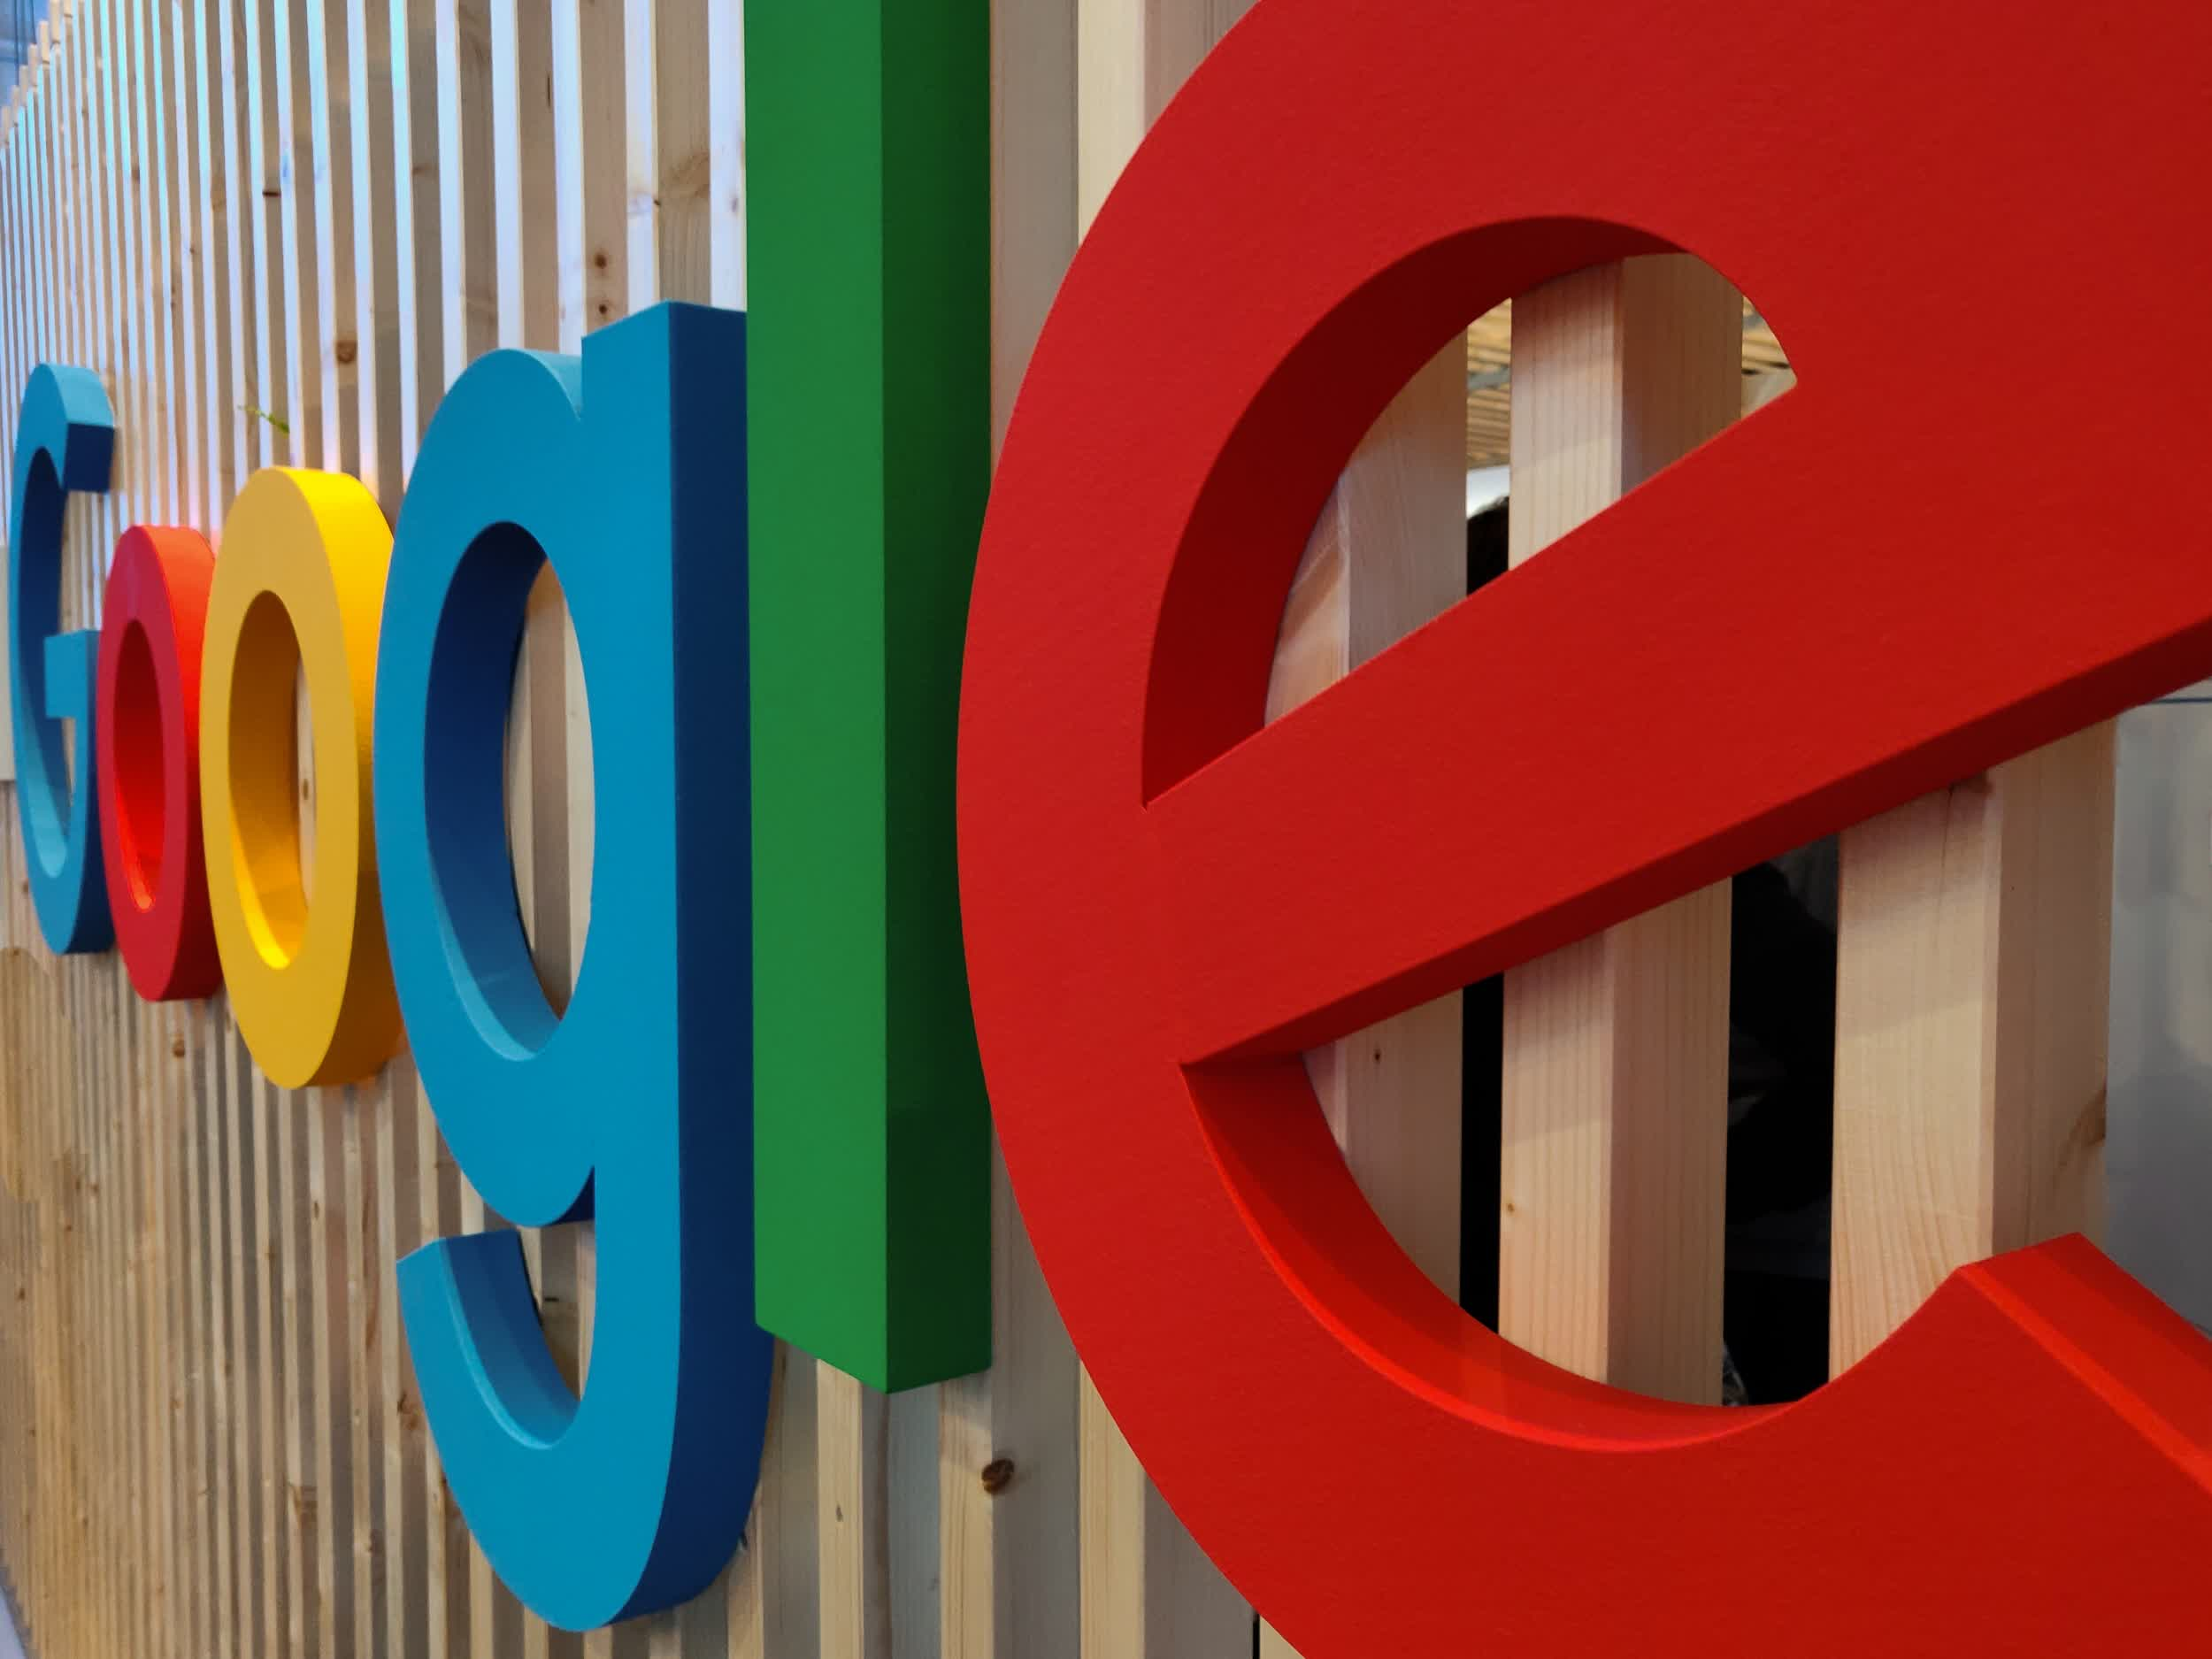 South Korean competition watchdog fines Google $177 million for blocking Android forks